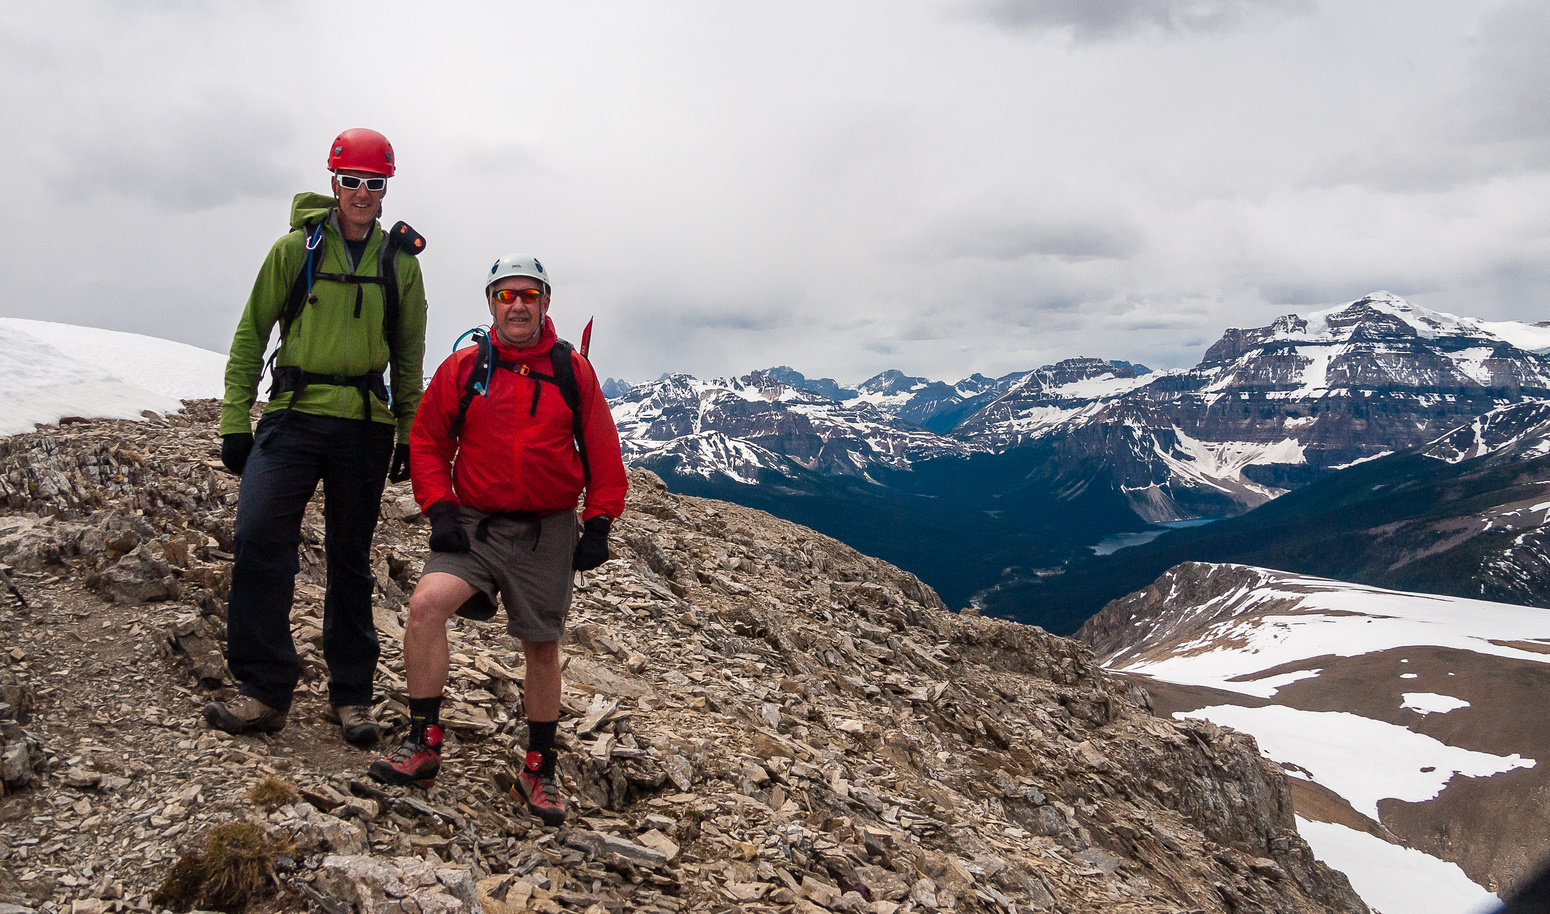 Vern and Bill on Copper Mountain.